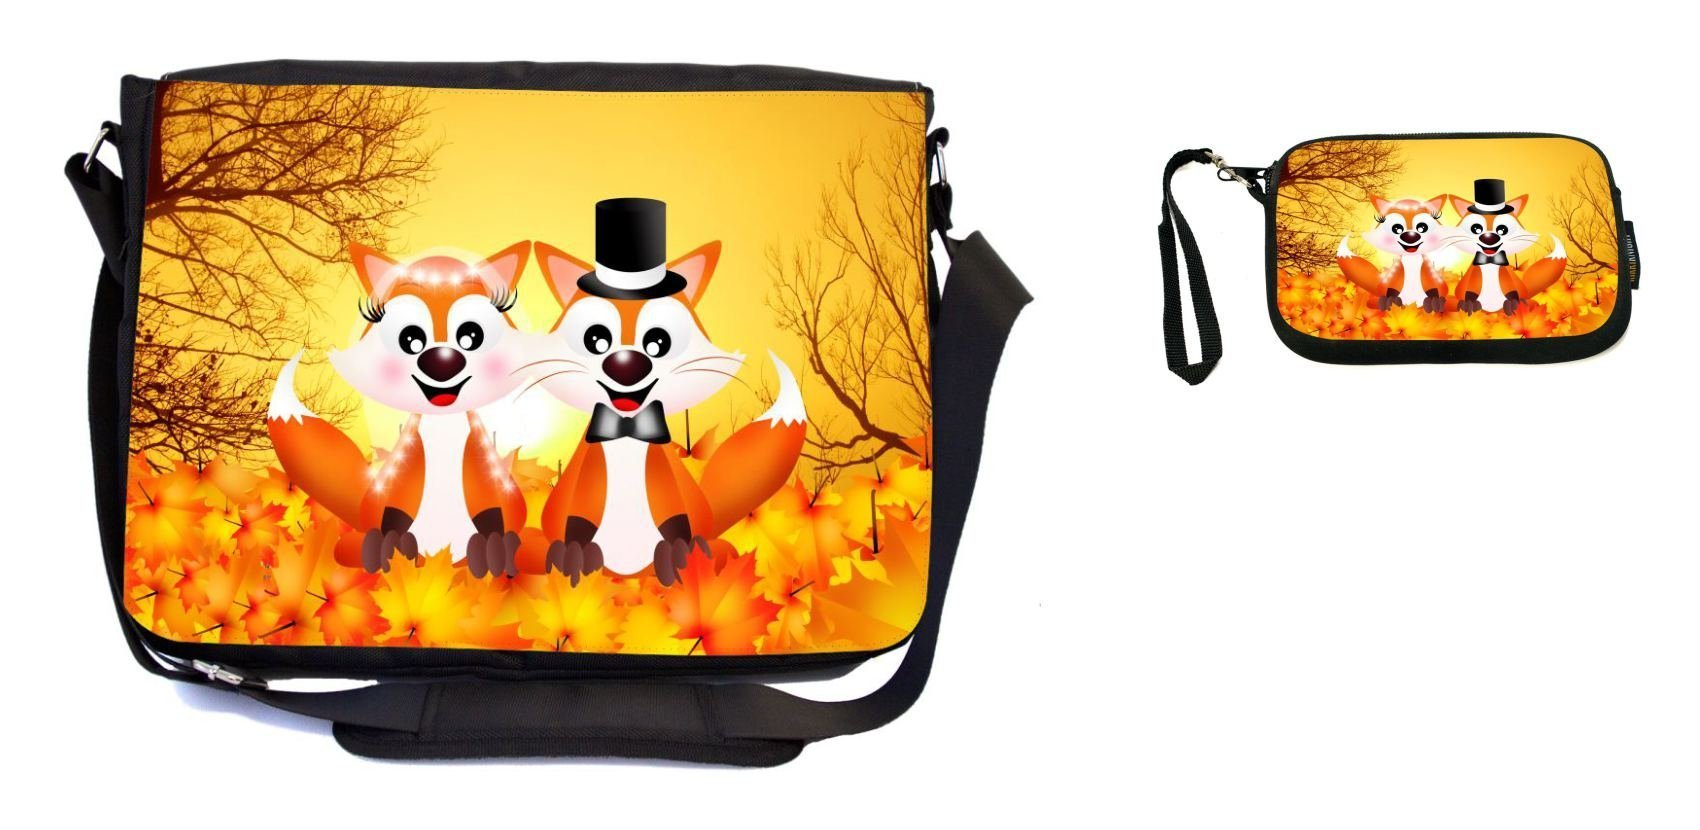 Rikki Knight Red Foxes in Love Wedding Illustration Design Messenger Bag - School Bag - Laptop Bag - with Padded Insert - Includes UKBK Premium Coin Purse